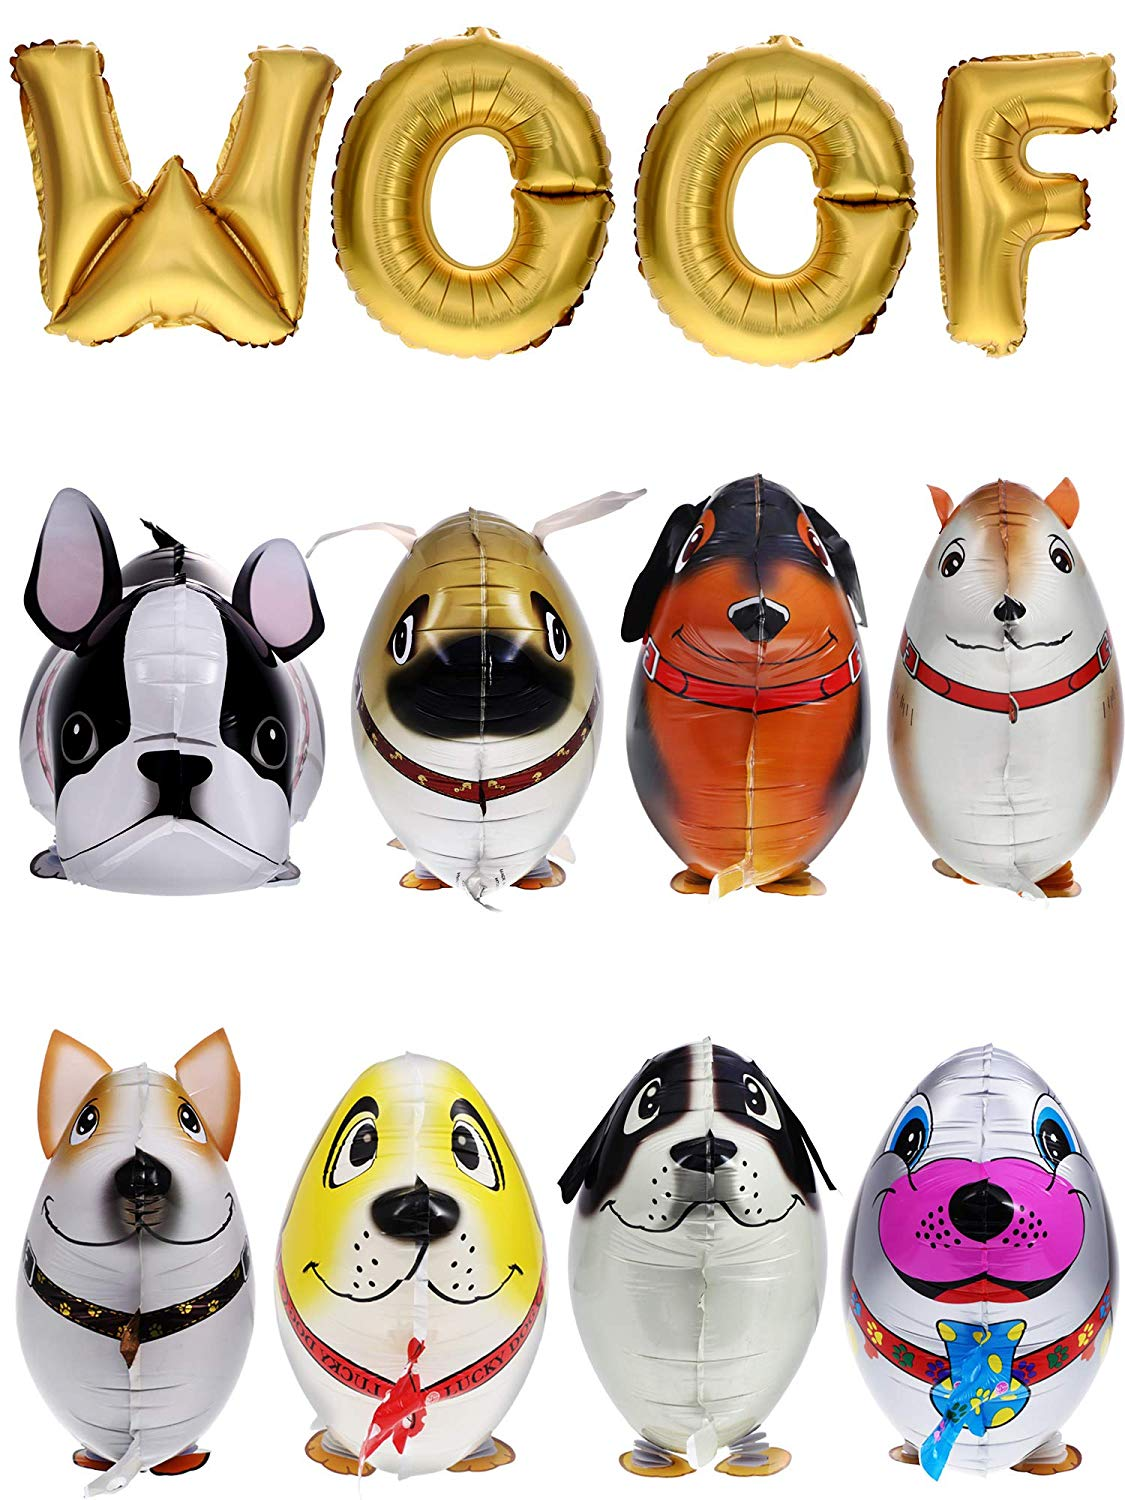 Get Quotations · Gejoy 12 Pieces Walking Animal Balloons Pet Dog Balloons WOOF Letter Balloons Dog Birthday Themed Party